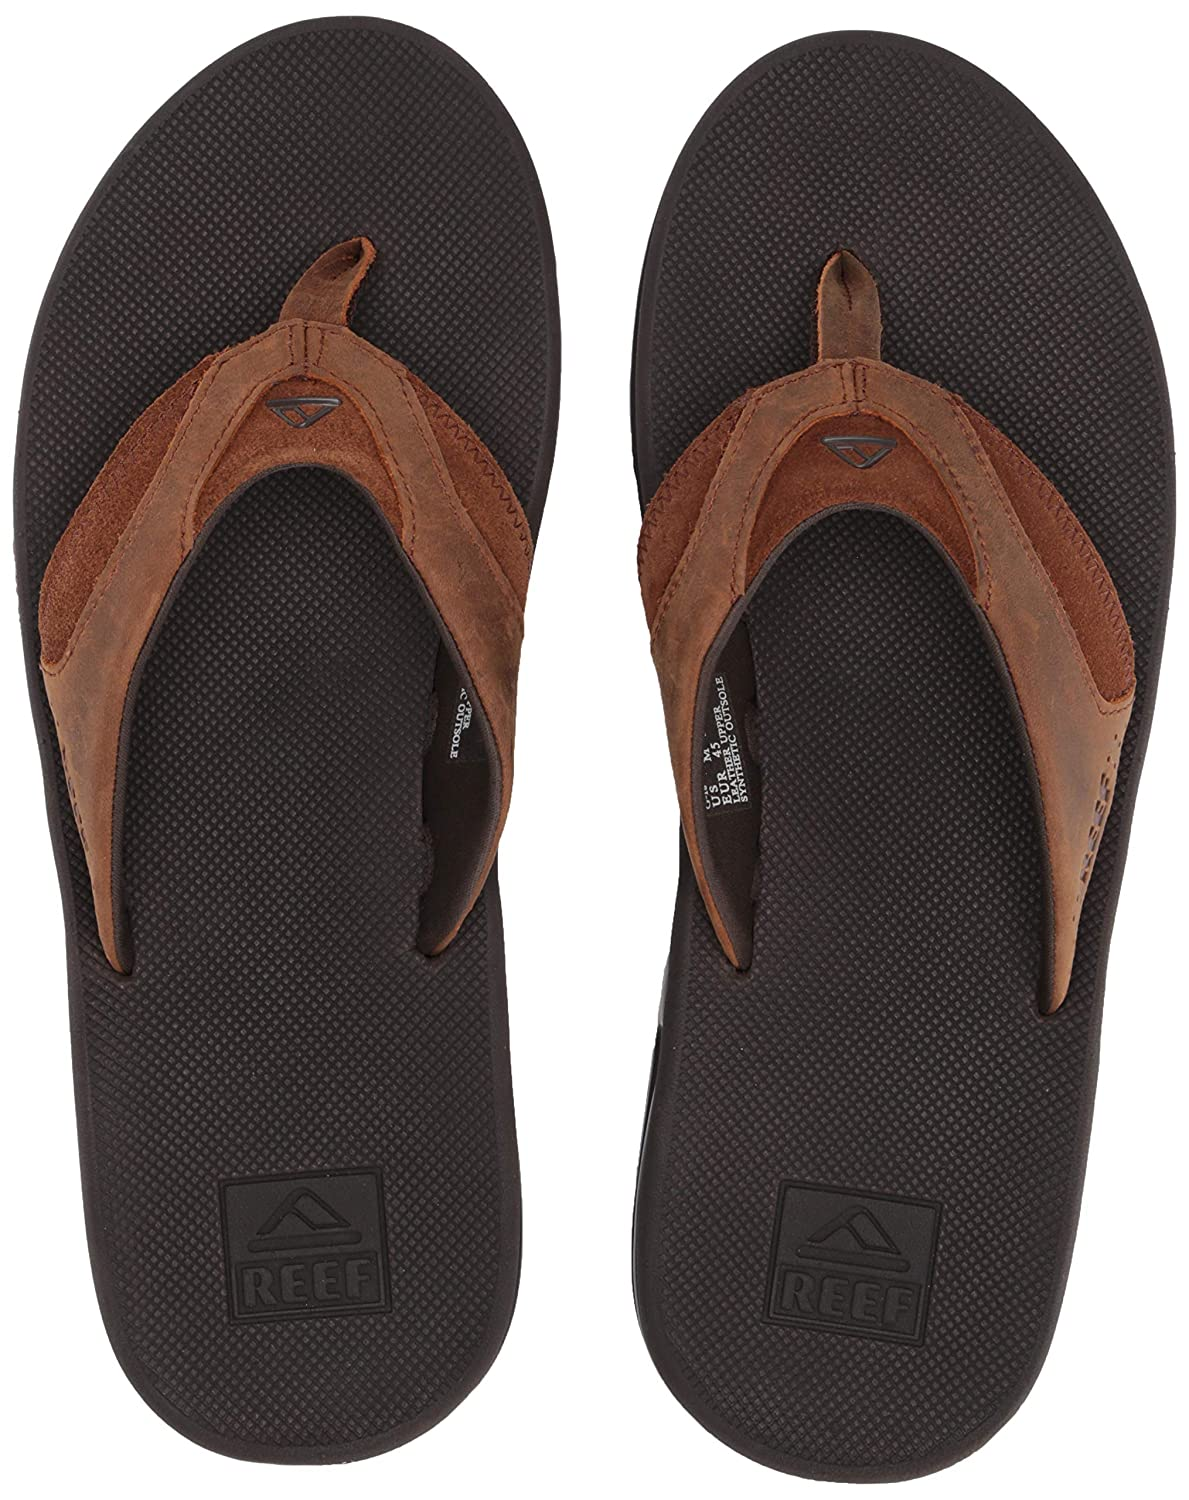 Reef Leather Fanning, Chanclas para Hombre, Marrón (Bronze BRZ), 40 EU